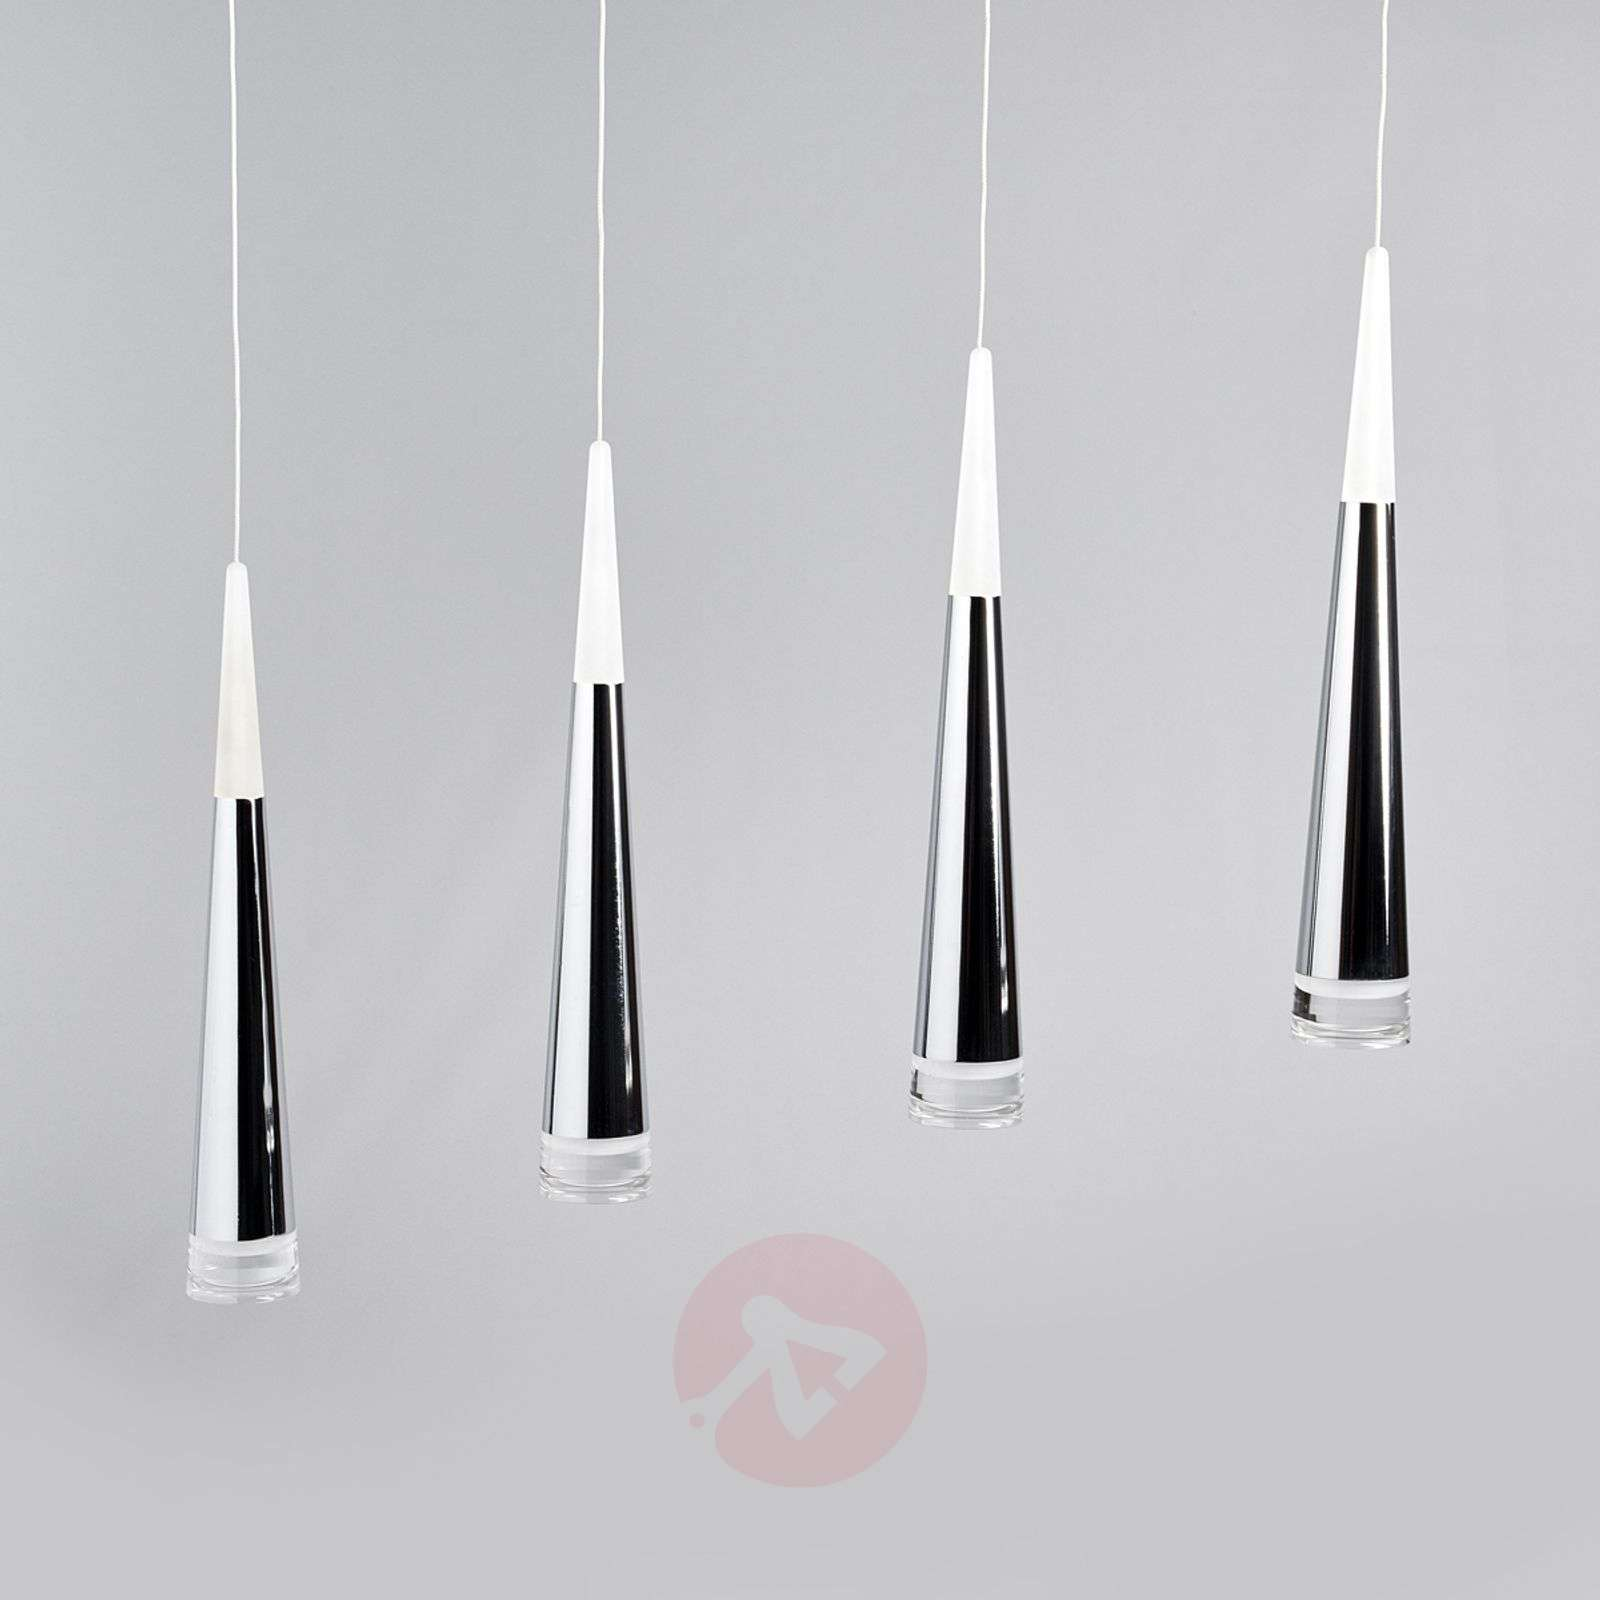 Suspension LED à quatre lampes Janne-9987052-06